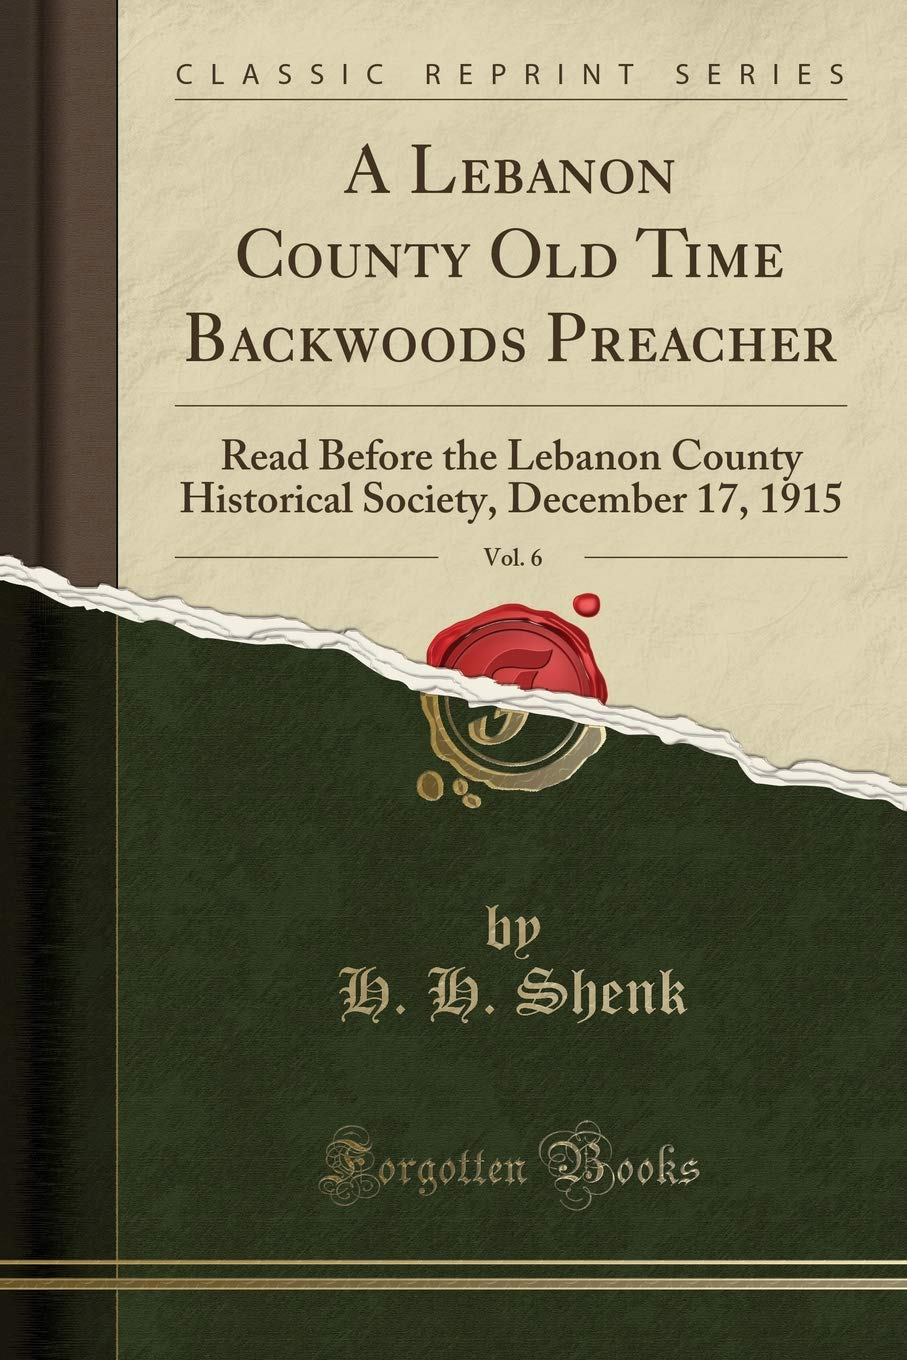 A Lebanon County Old Time Backwoods Preacher, Vol. 6: Read Before the Lebanon County Historical Society, December 17, 1915 (Classic Reprint) pdf